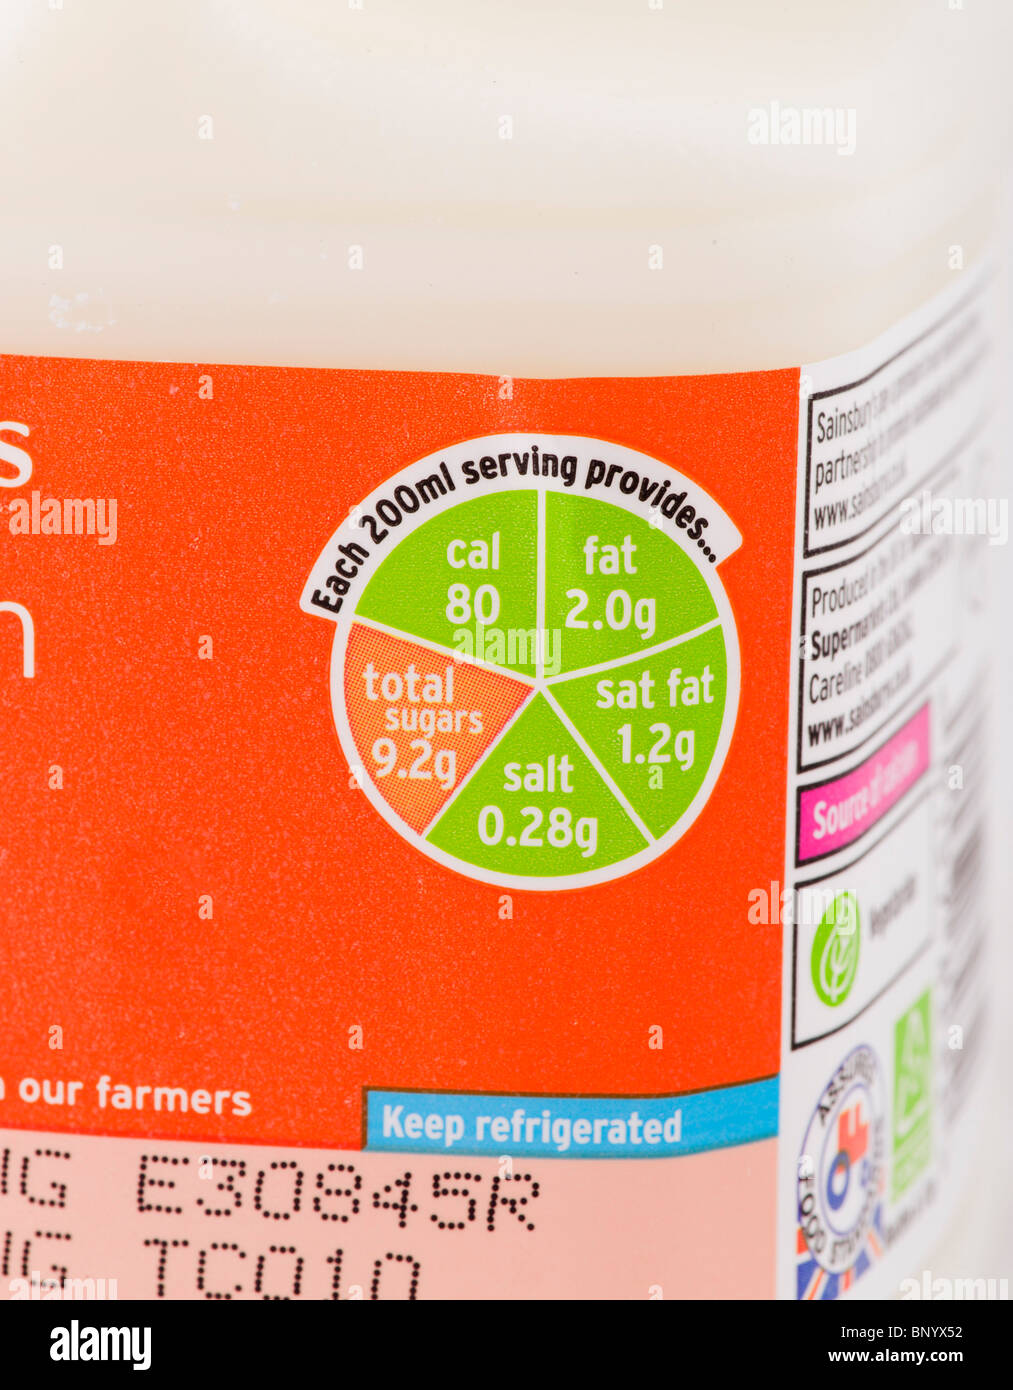 'Traffic Light' label on a carton of Sainsbury's low fat milk Stock Photo